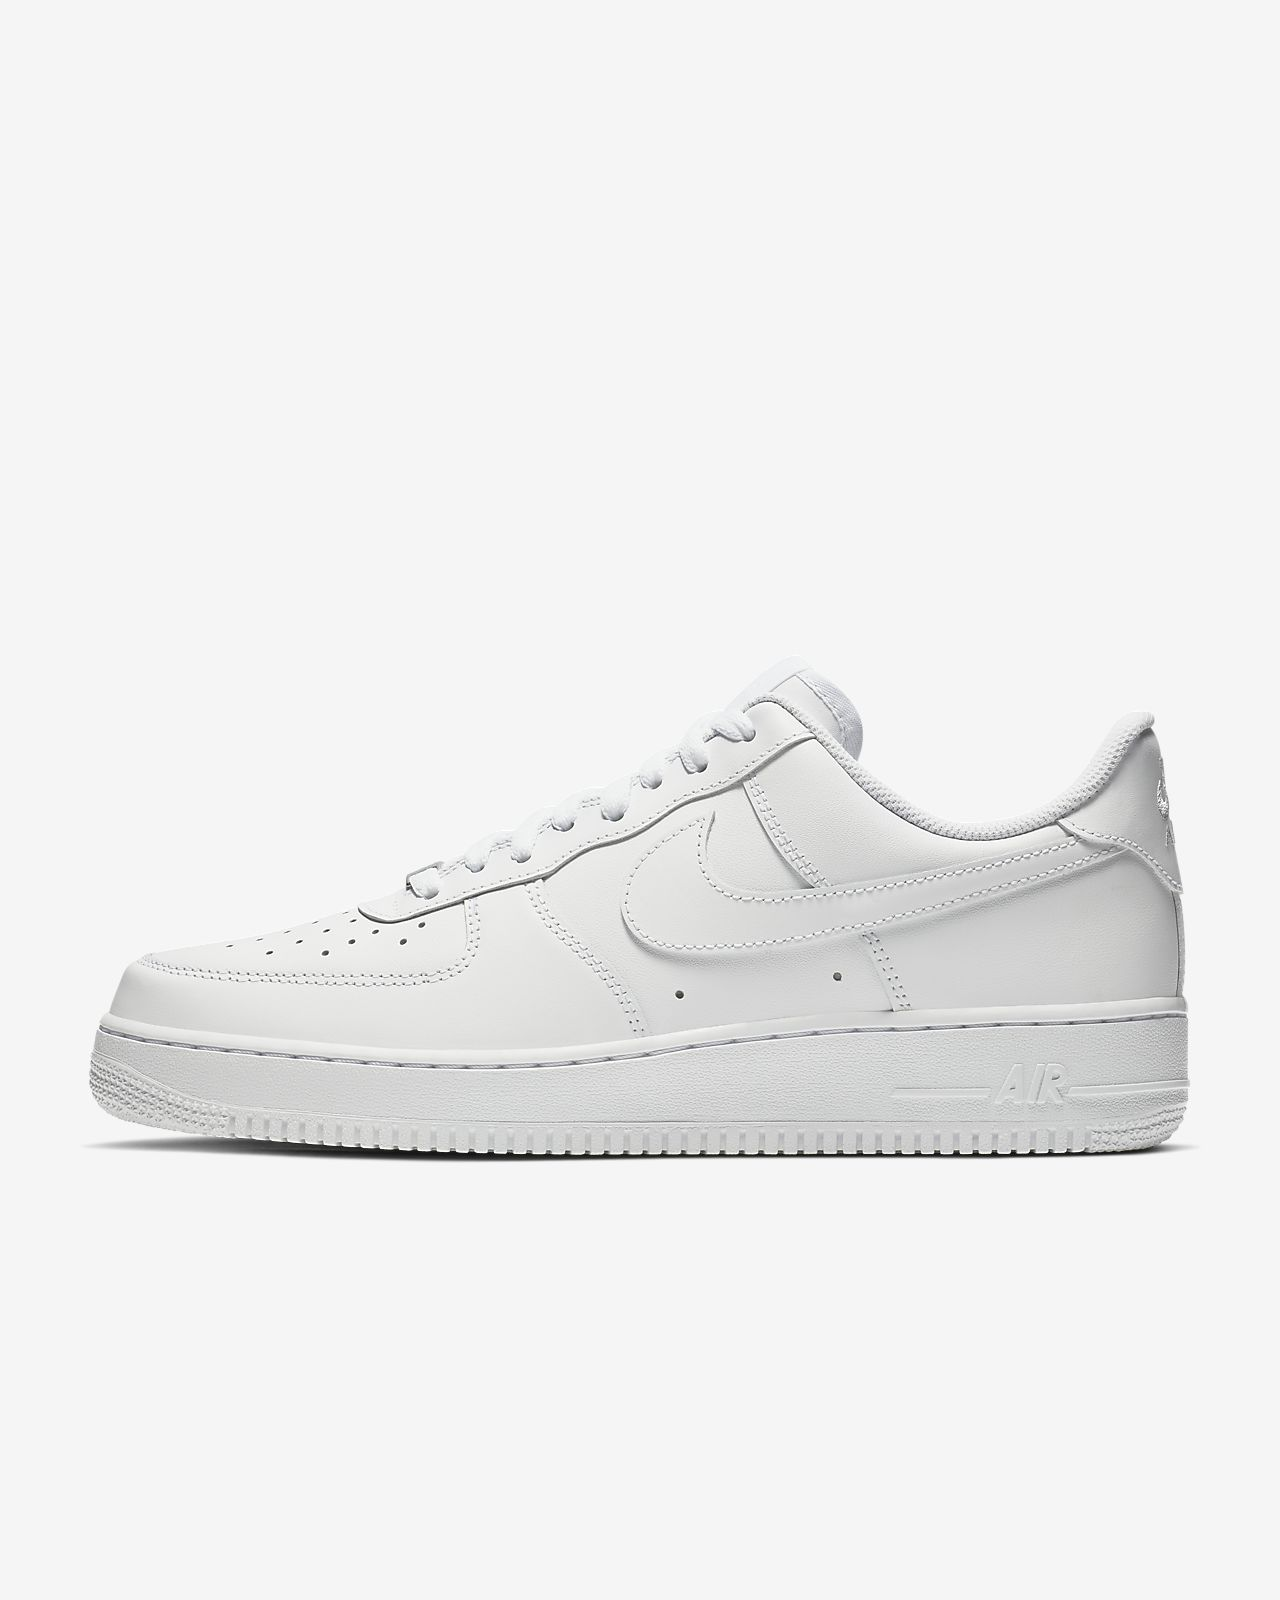 5c94c21303c Nike Air Force 1 '07 Men's Shoe. Nike.com